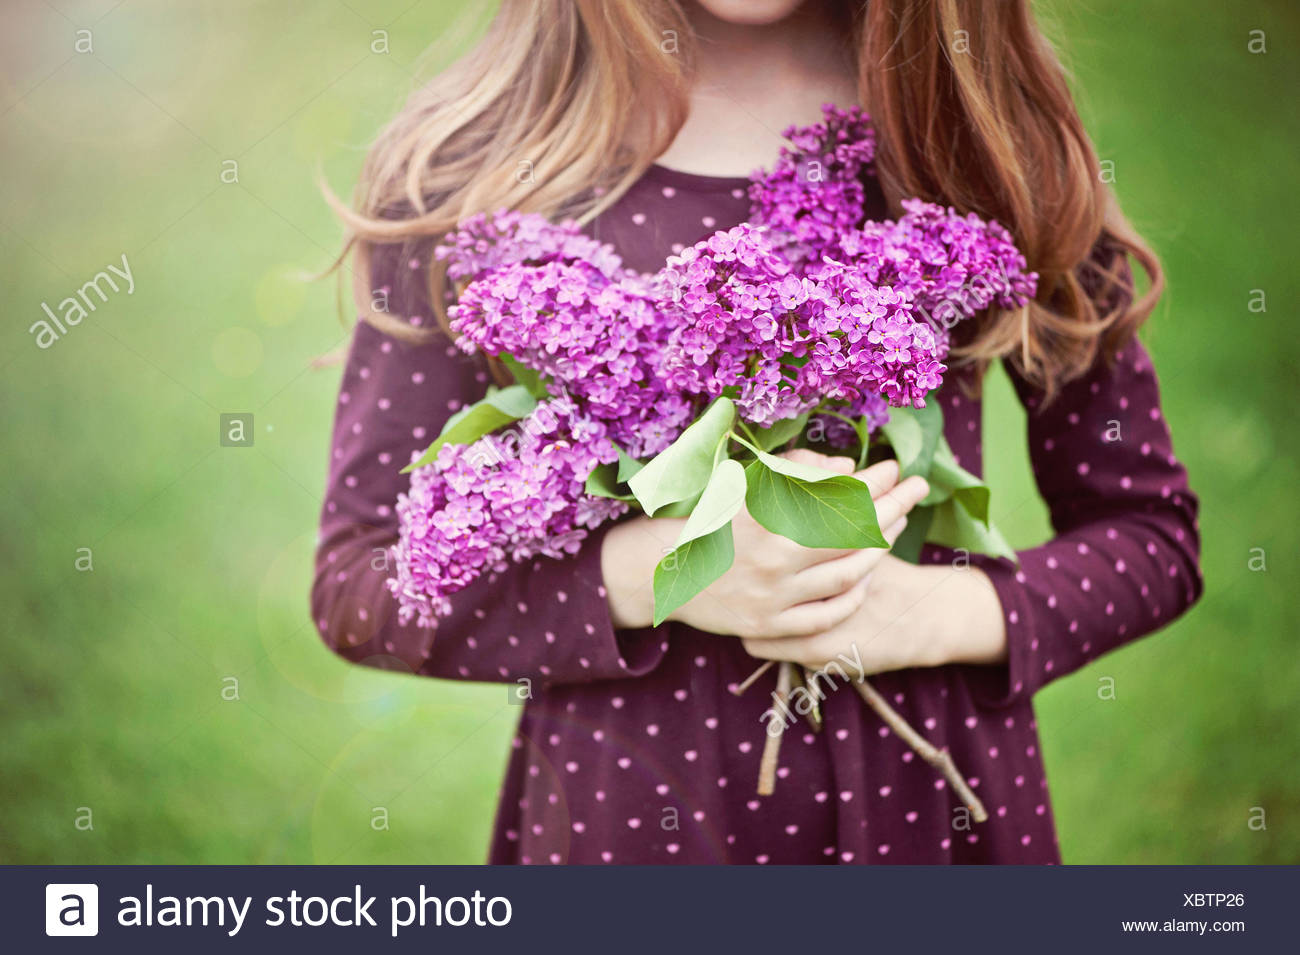 Close-up of a girl holding bunch of lilac flowers - Stock Image